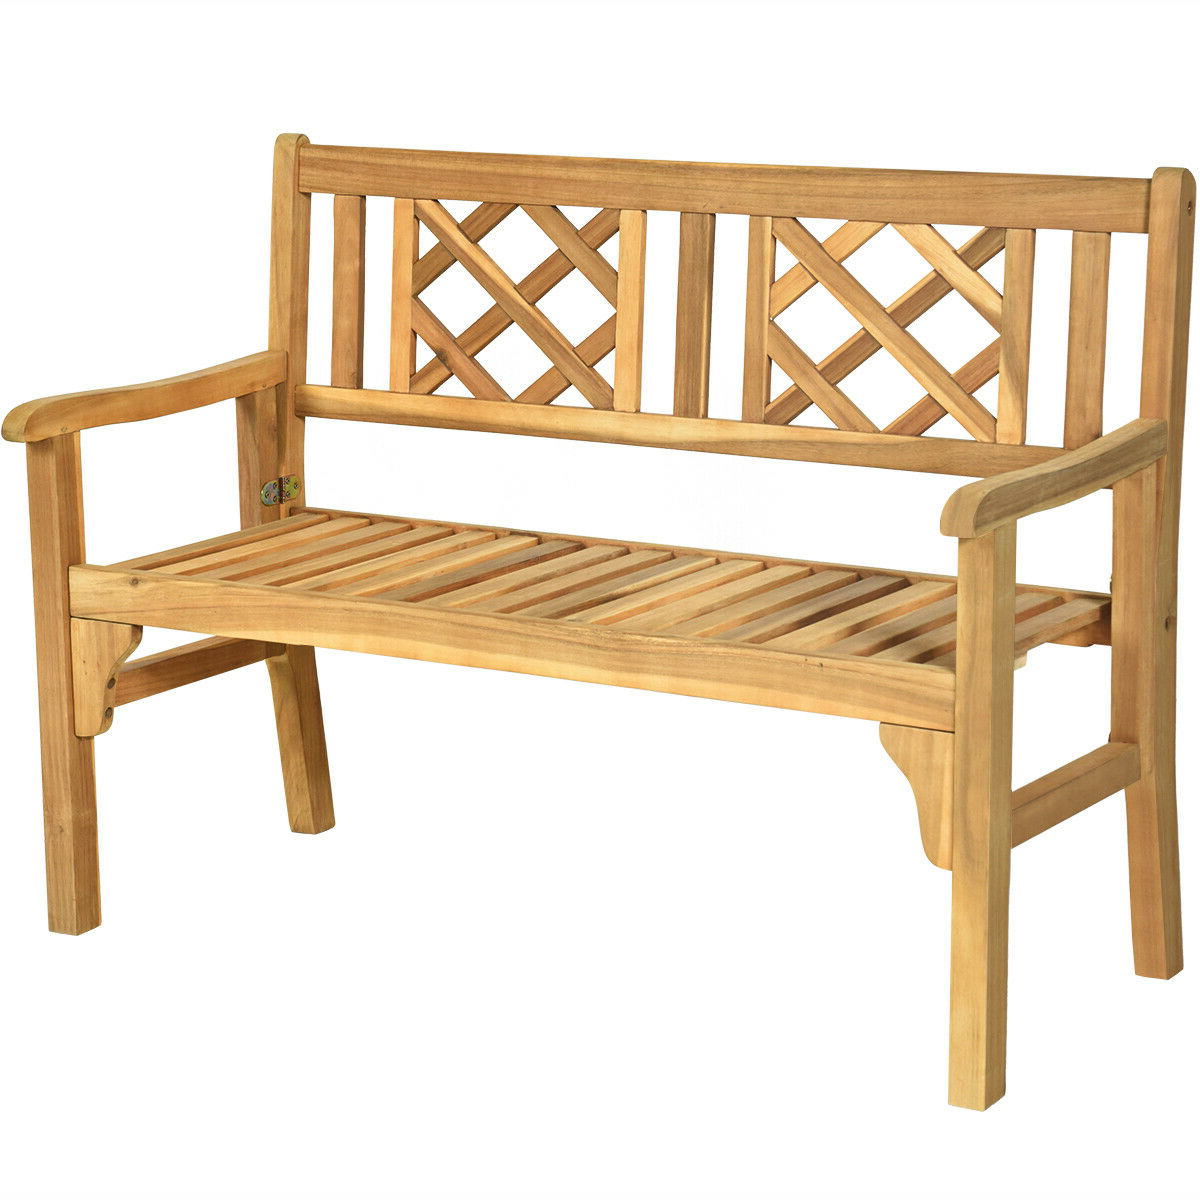 Hampstead Teak Garden Benches Within Famous Patio Outdoor Acacia Wood Bench Folding Loveseat Chair Garden Furniture Teak (View 7 of 30)